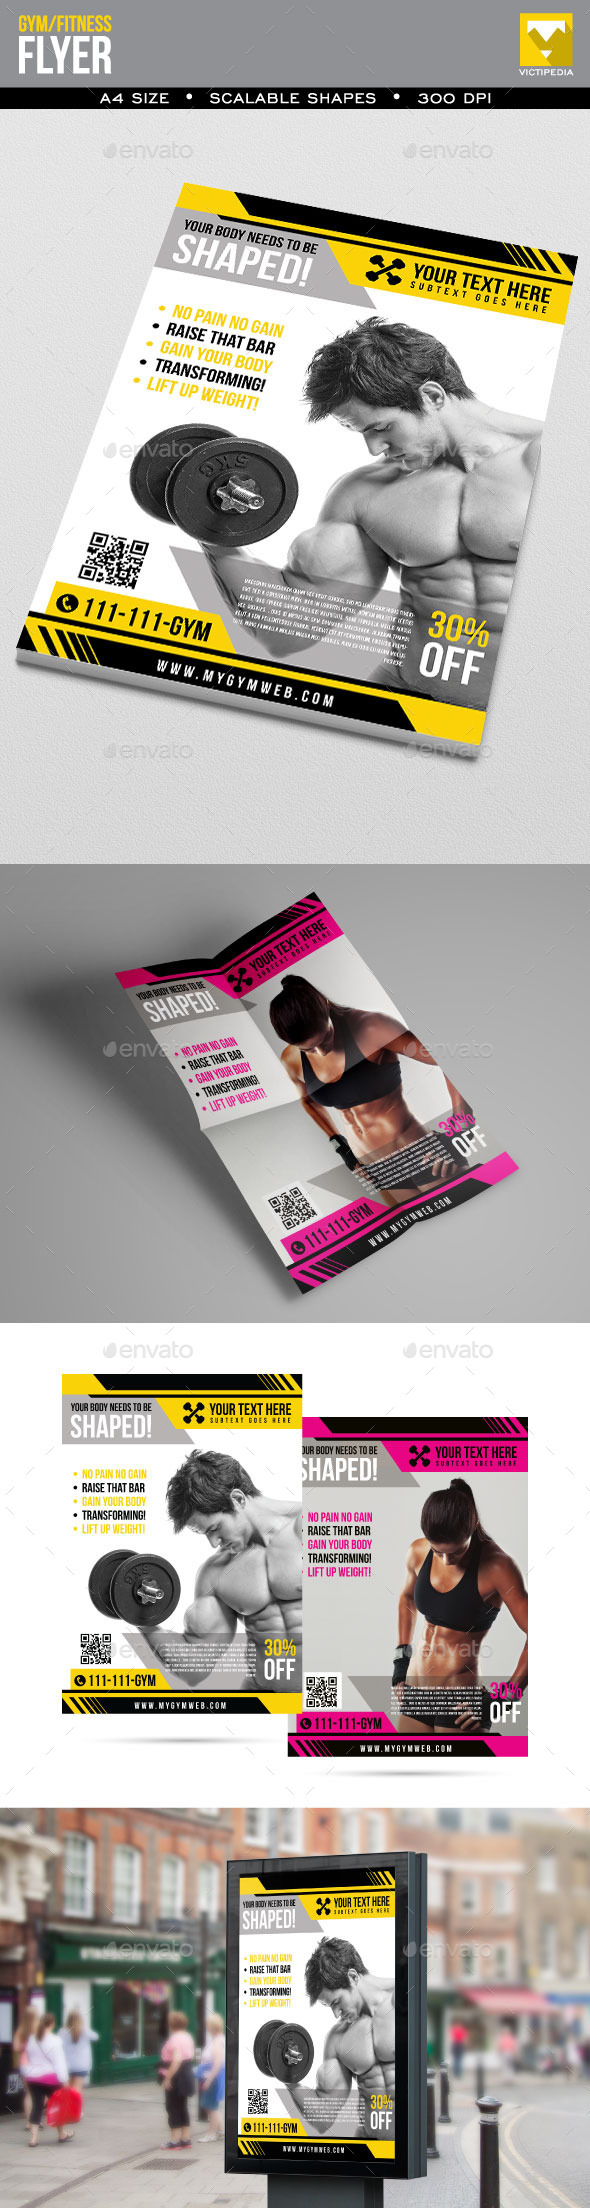 Simple Gym/Fitness Flyer